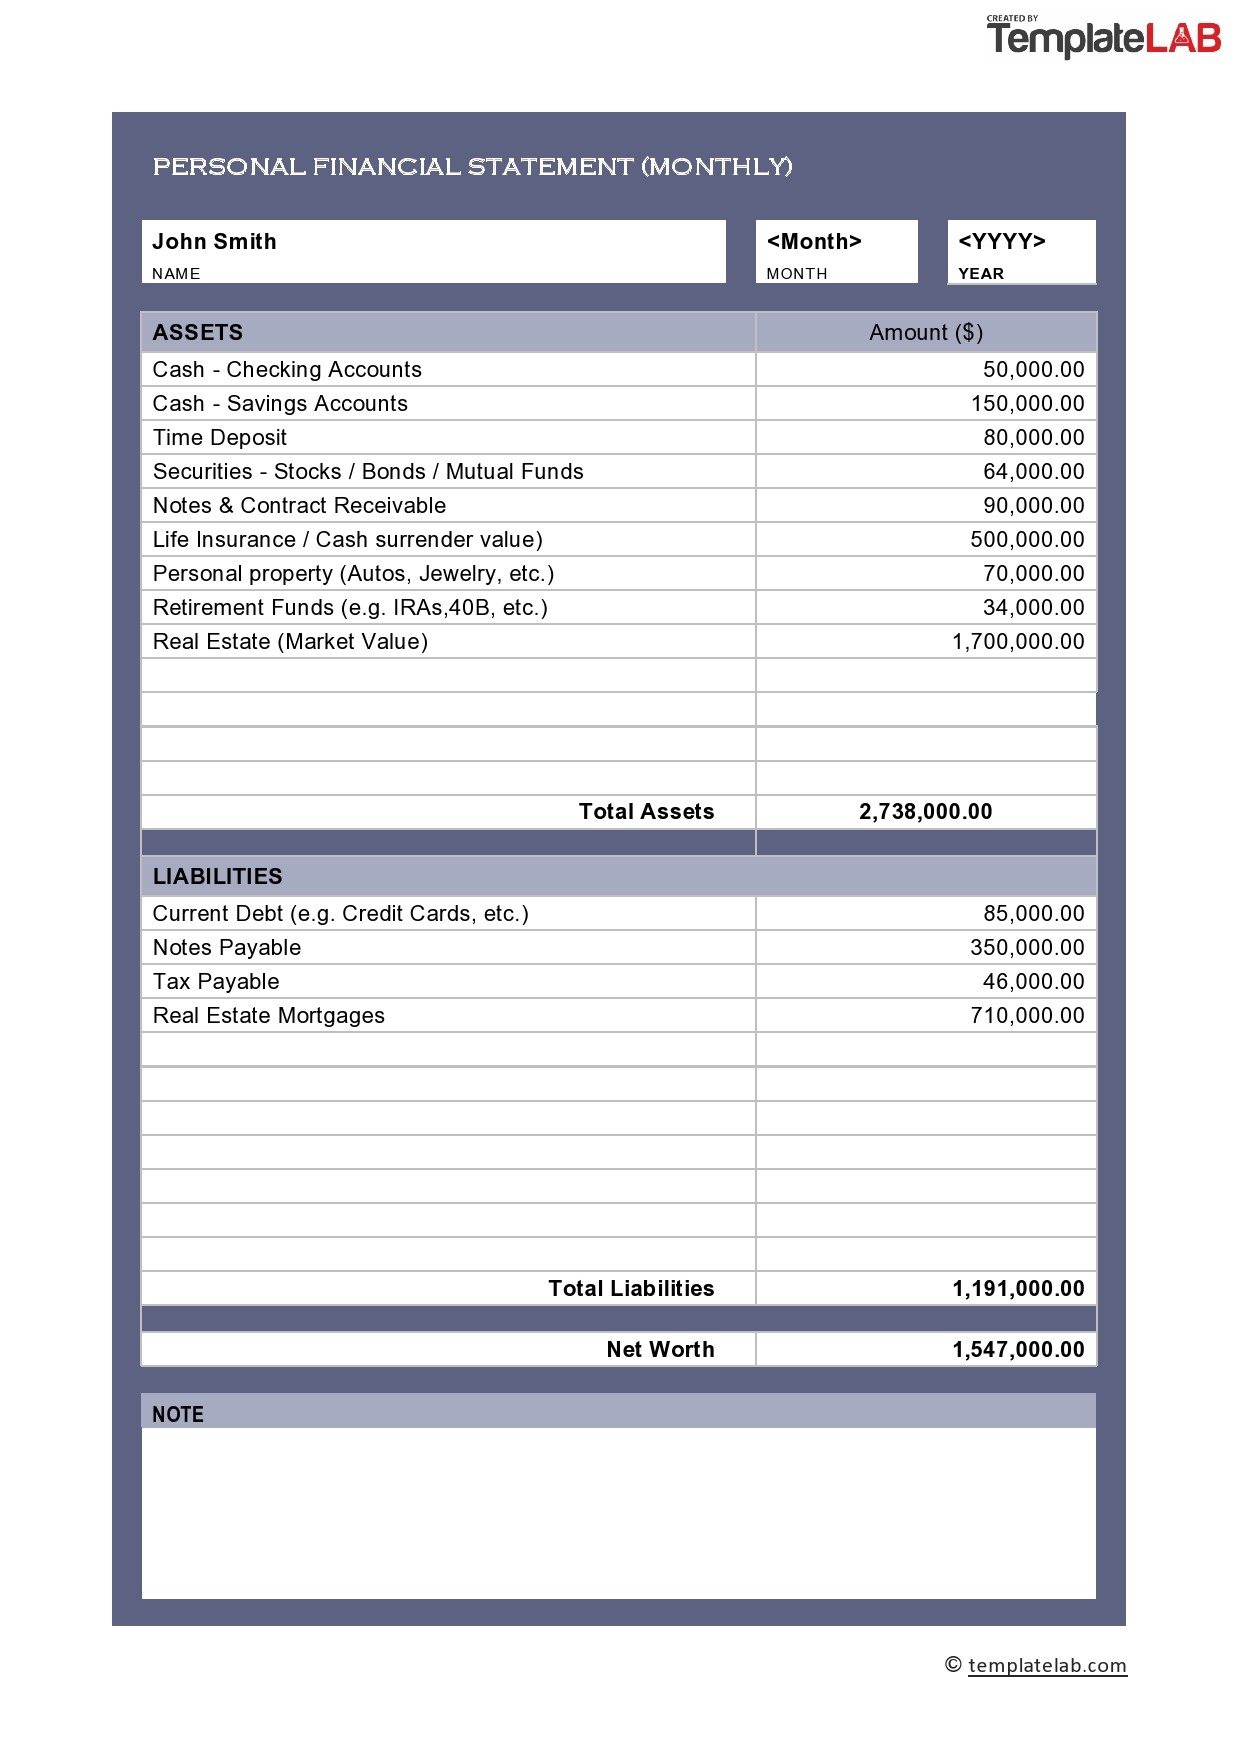 Free Personal Financial Statement 02 - TemplateLab